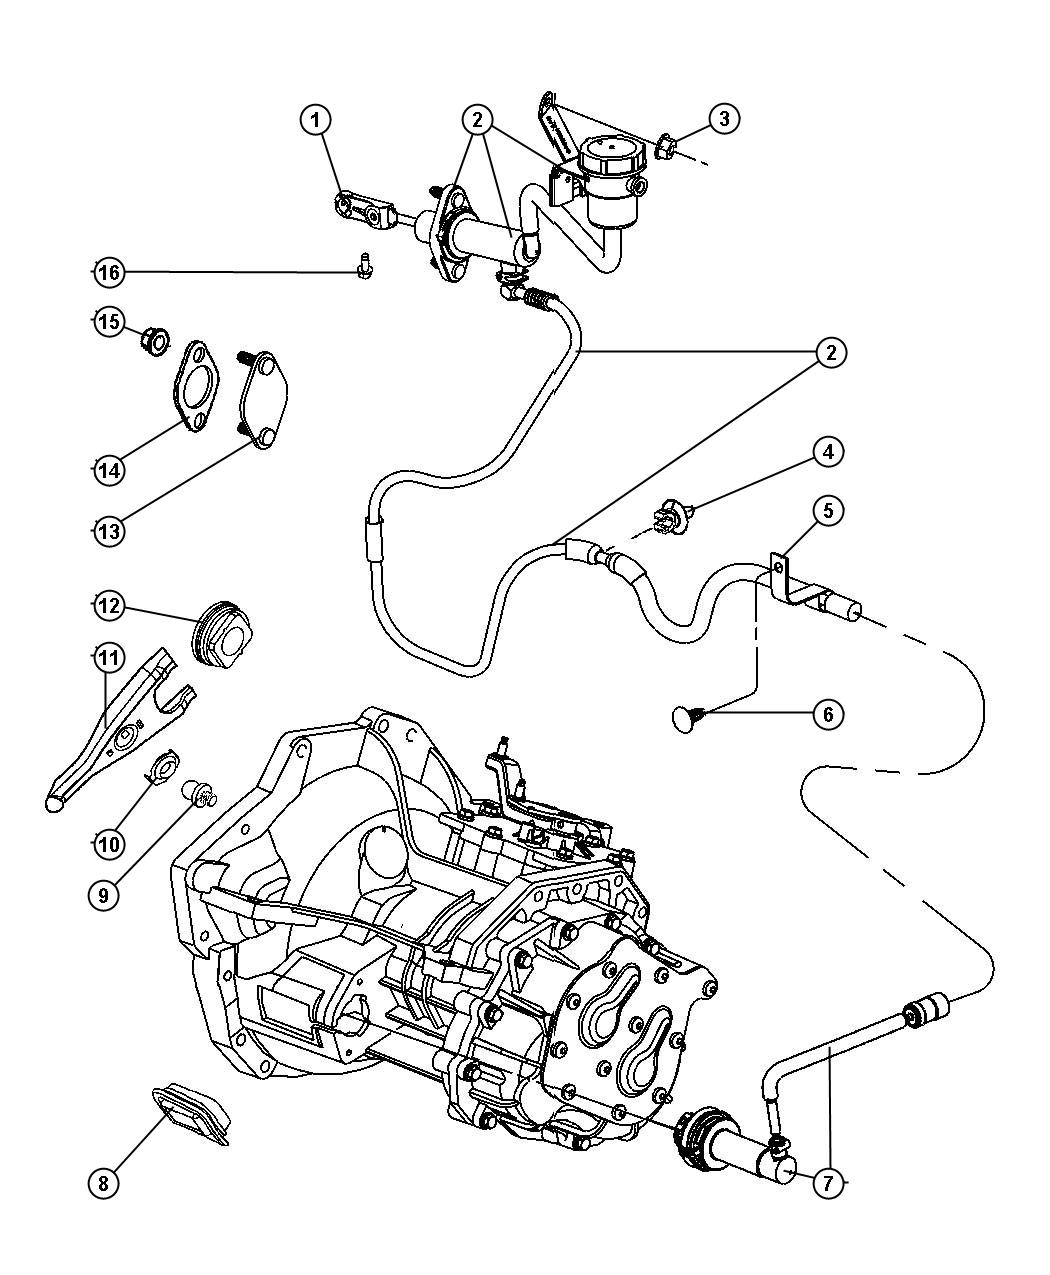 2005 dodge neon wiring diagram how to draw plc manual free engine image for